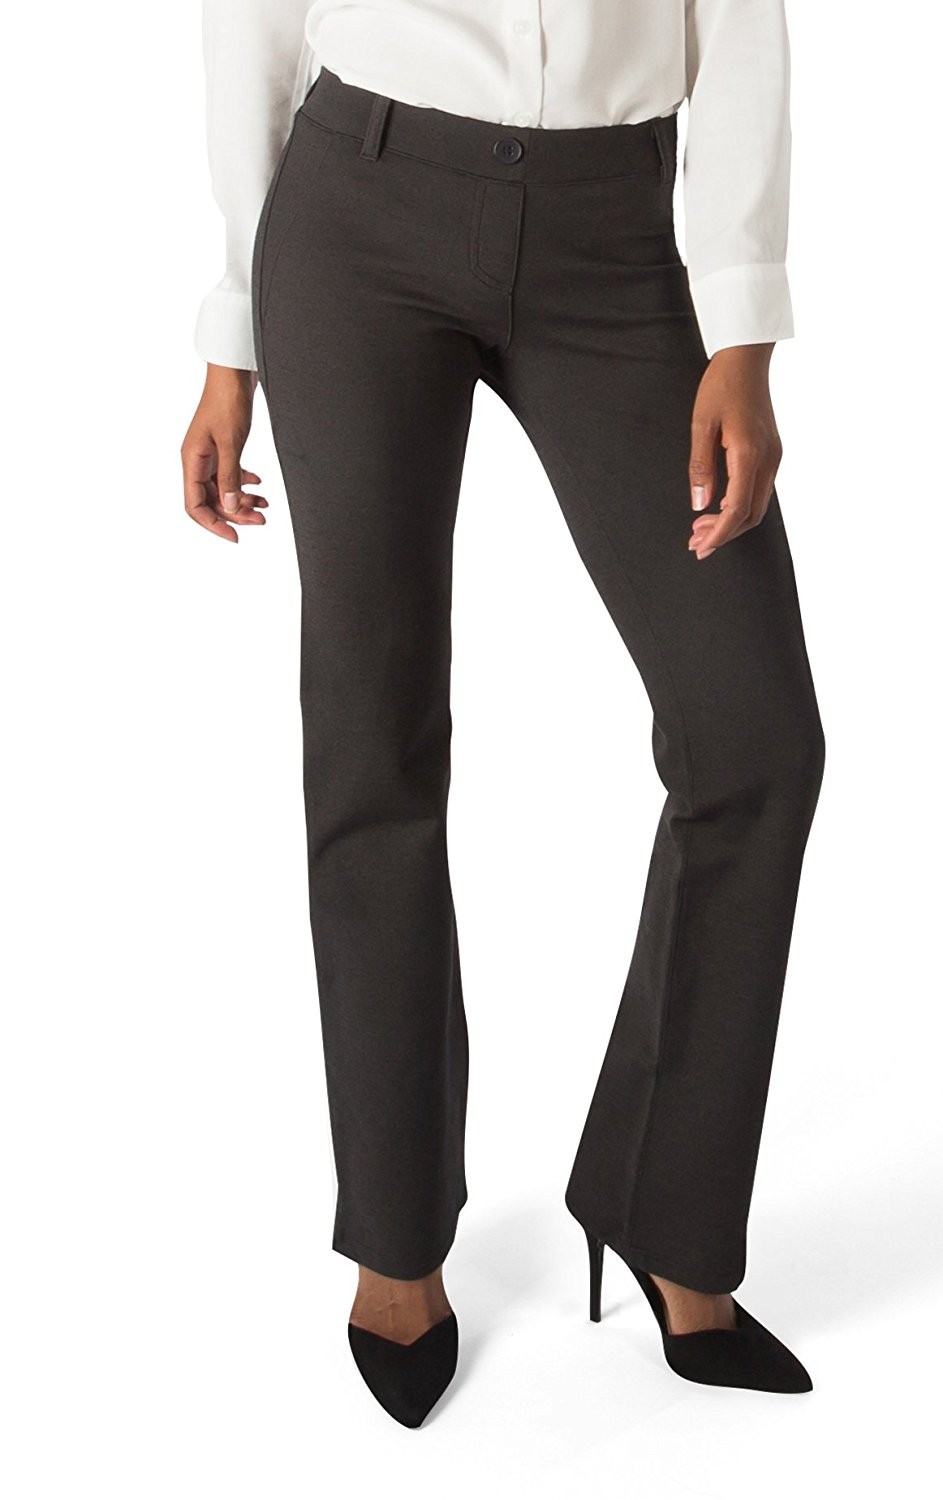 Betabrand Yoga Dress Pants | Womens Comfy Clothes | Skinny Girl Yoga Pants